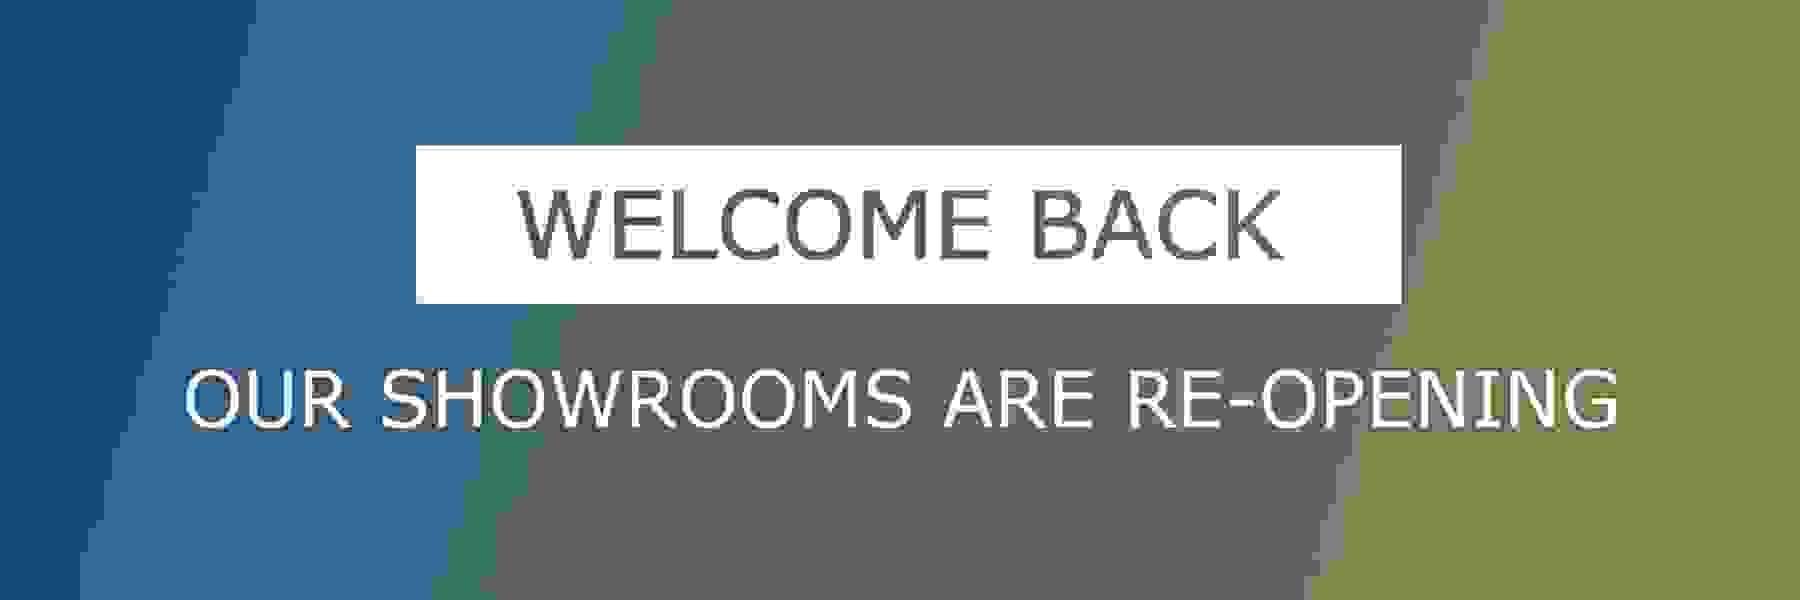 Re-opening our Showrooms